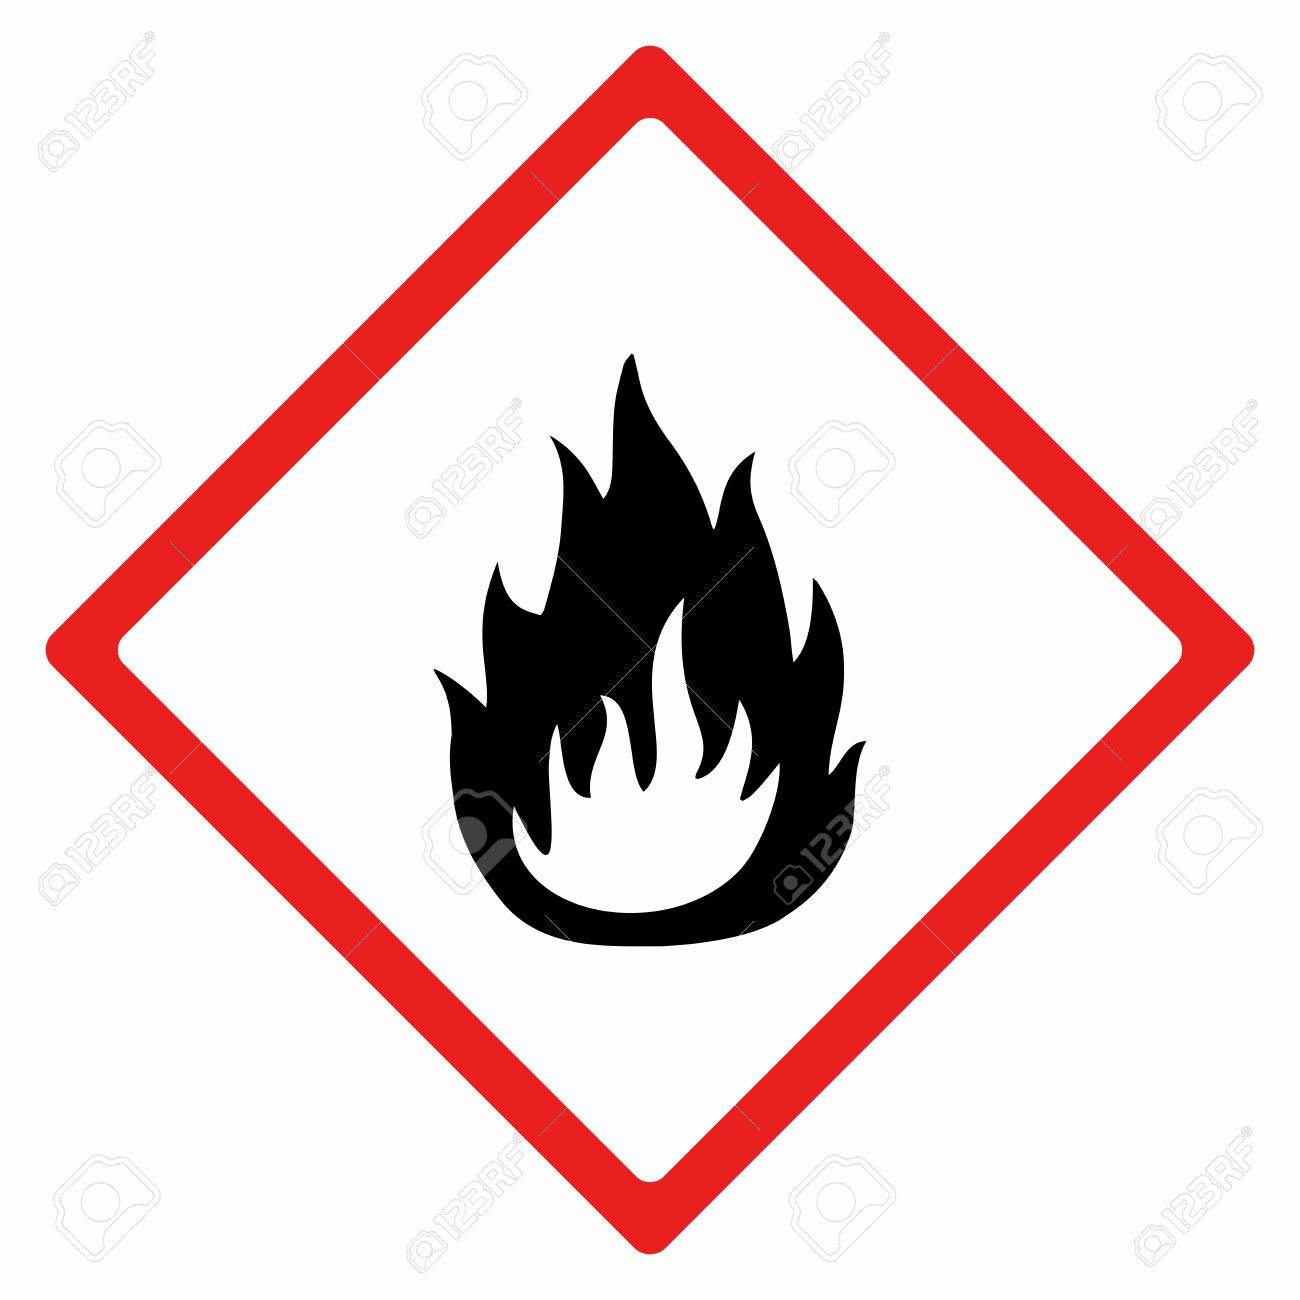 Flammable Material Sign Vector Design Iso 7010 Warning Symbol